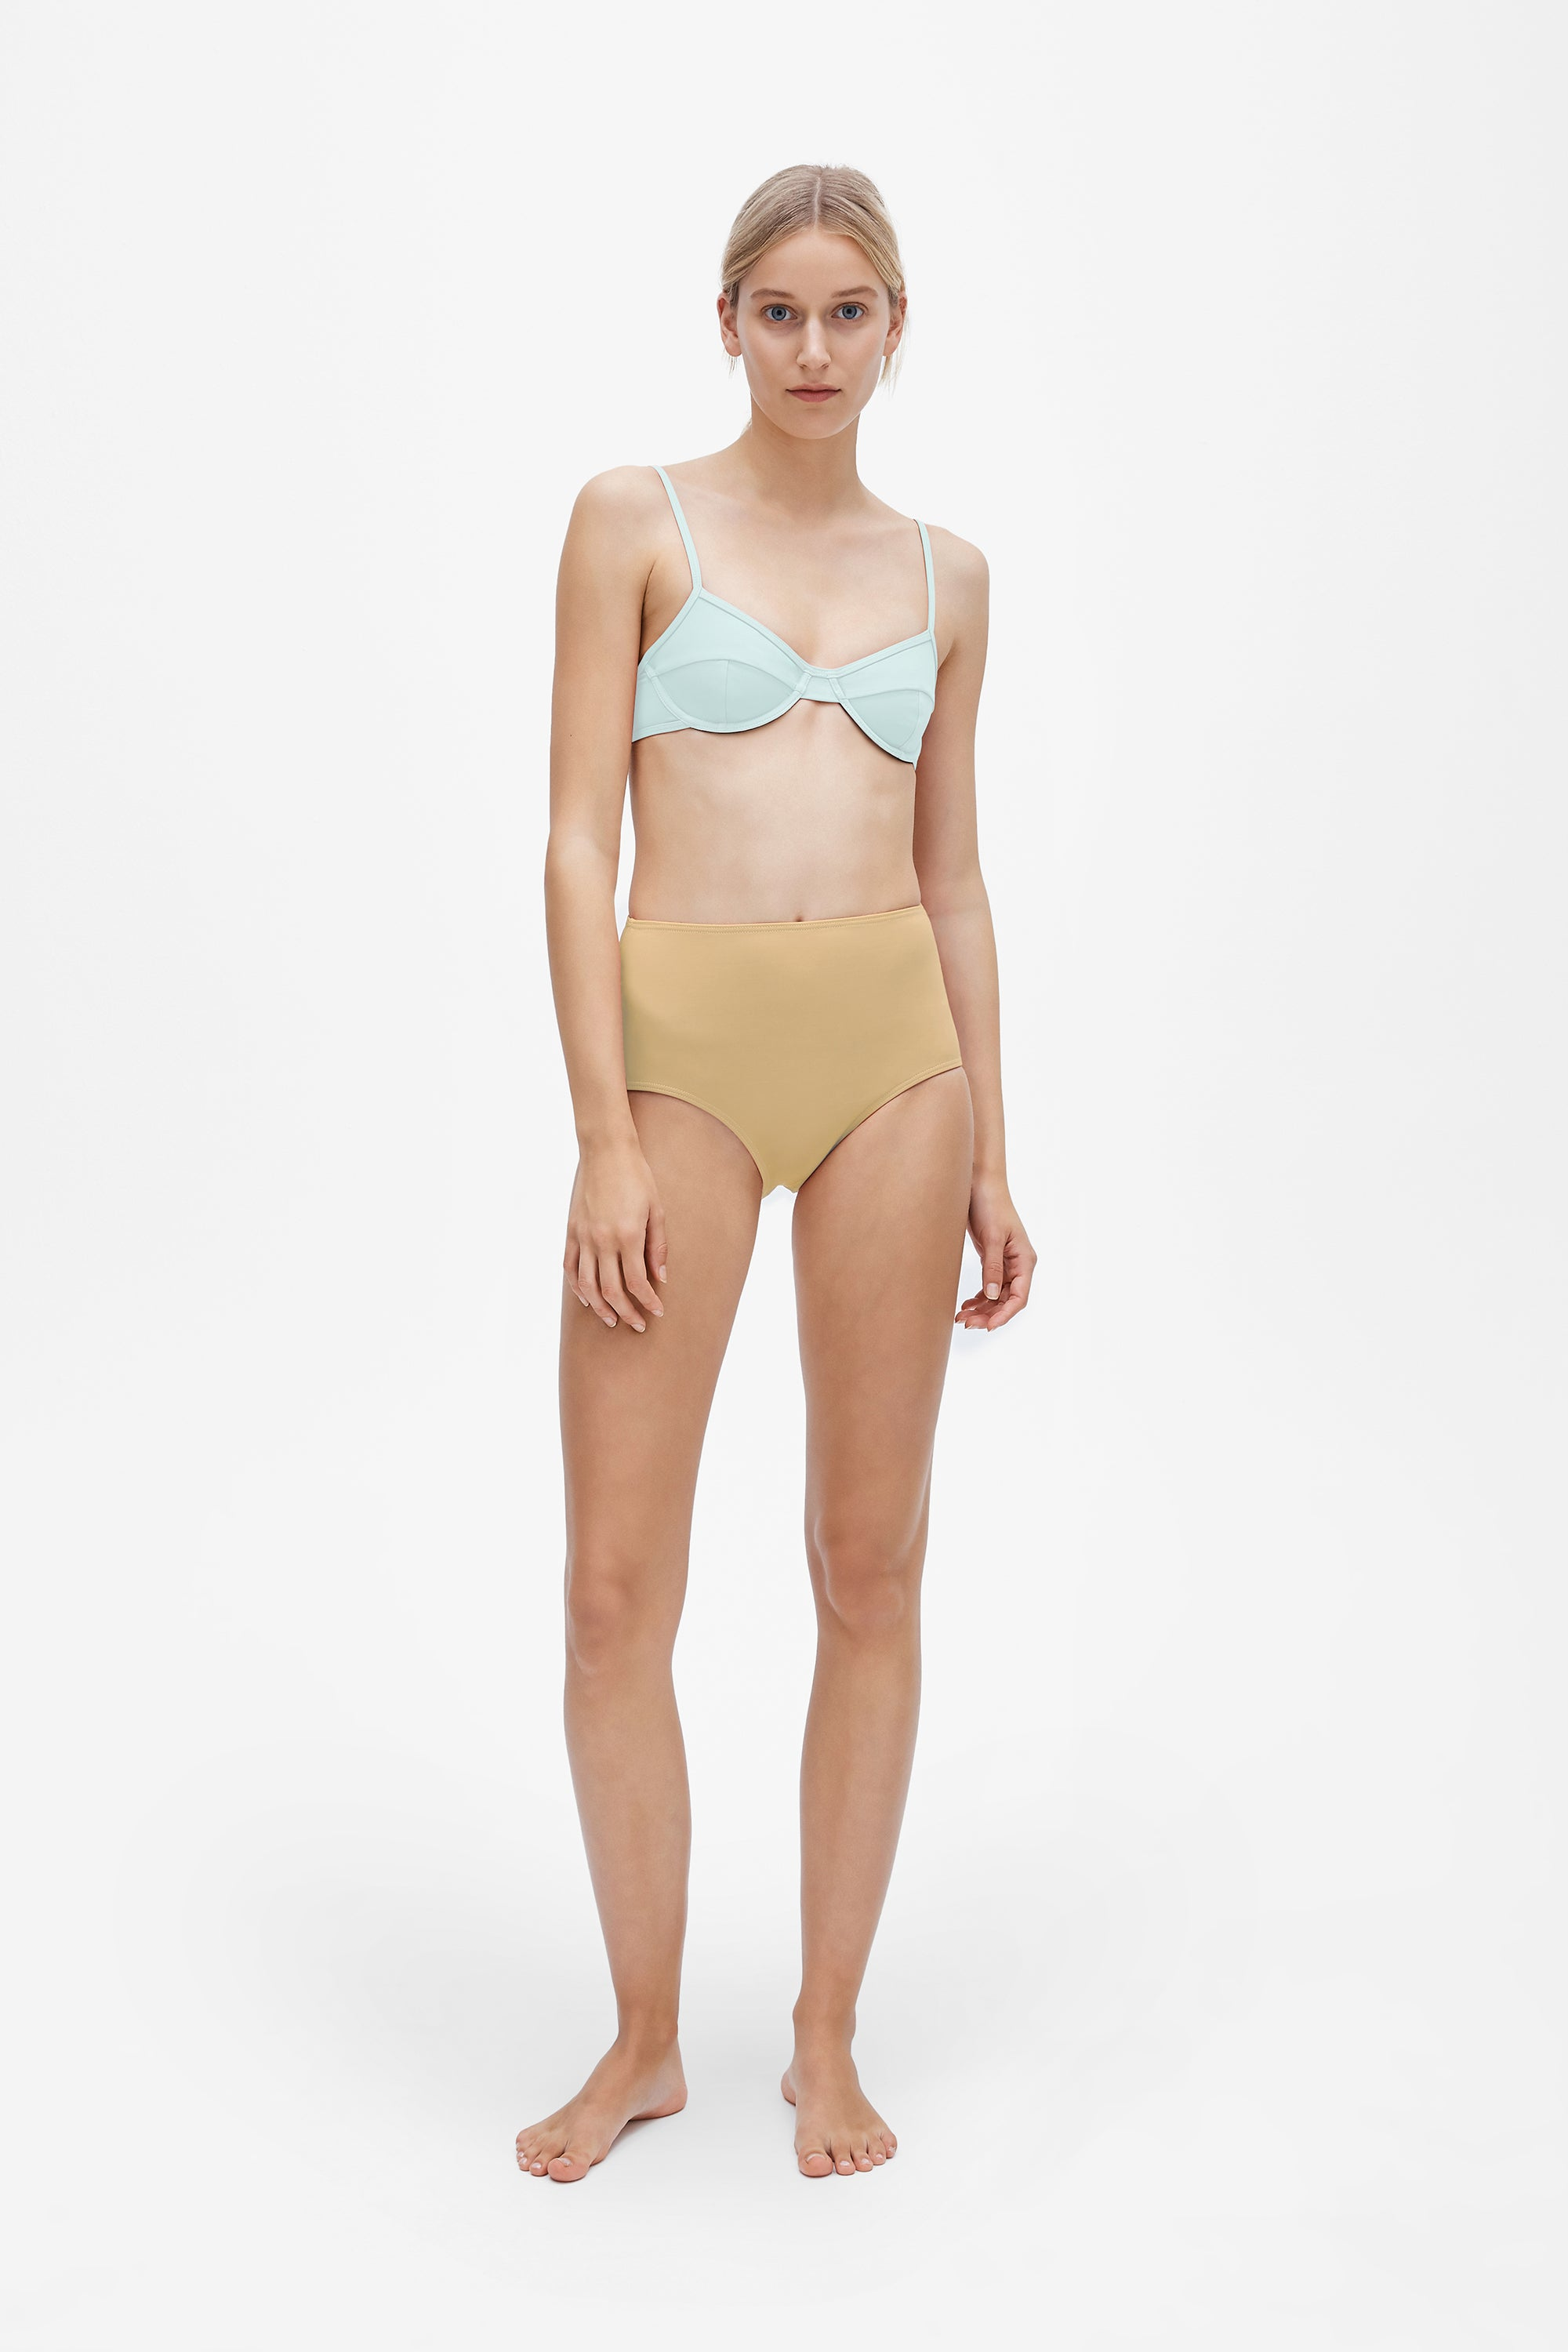 Elle top in Cool mint - Brief in Light straw